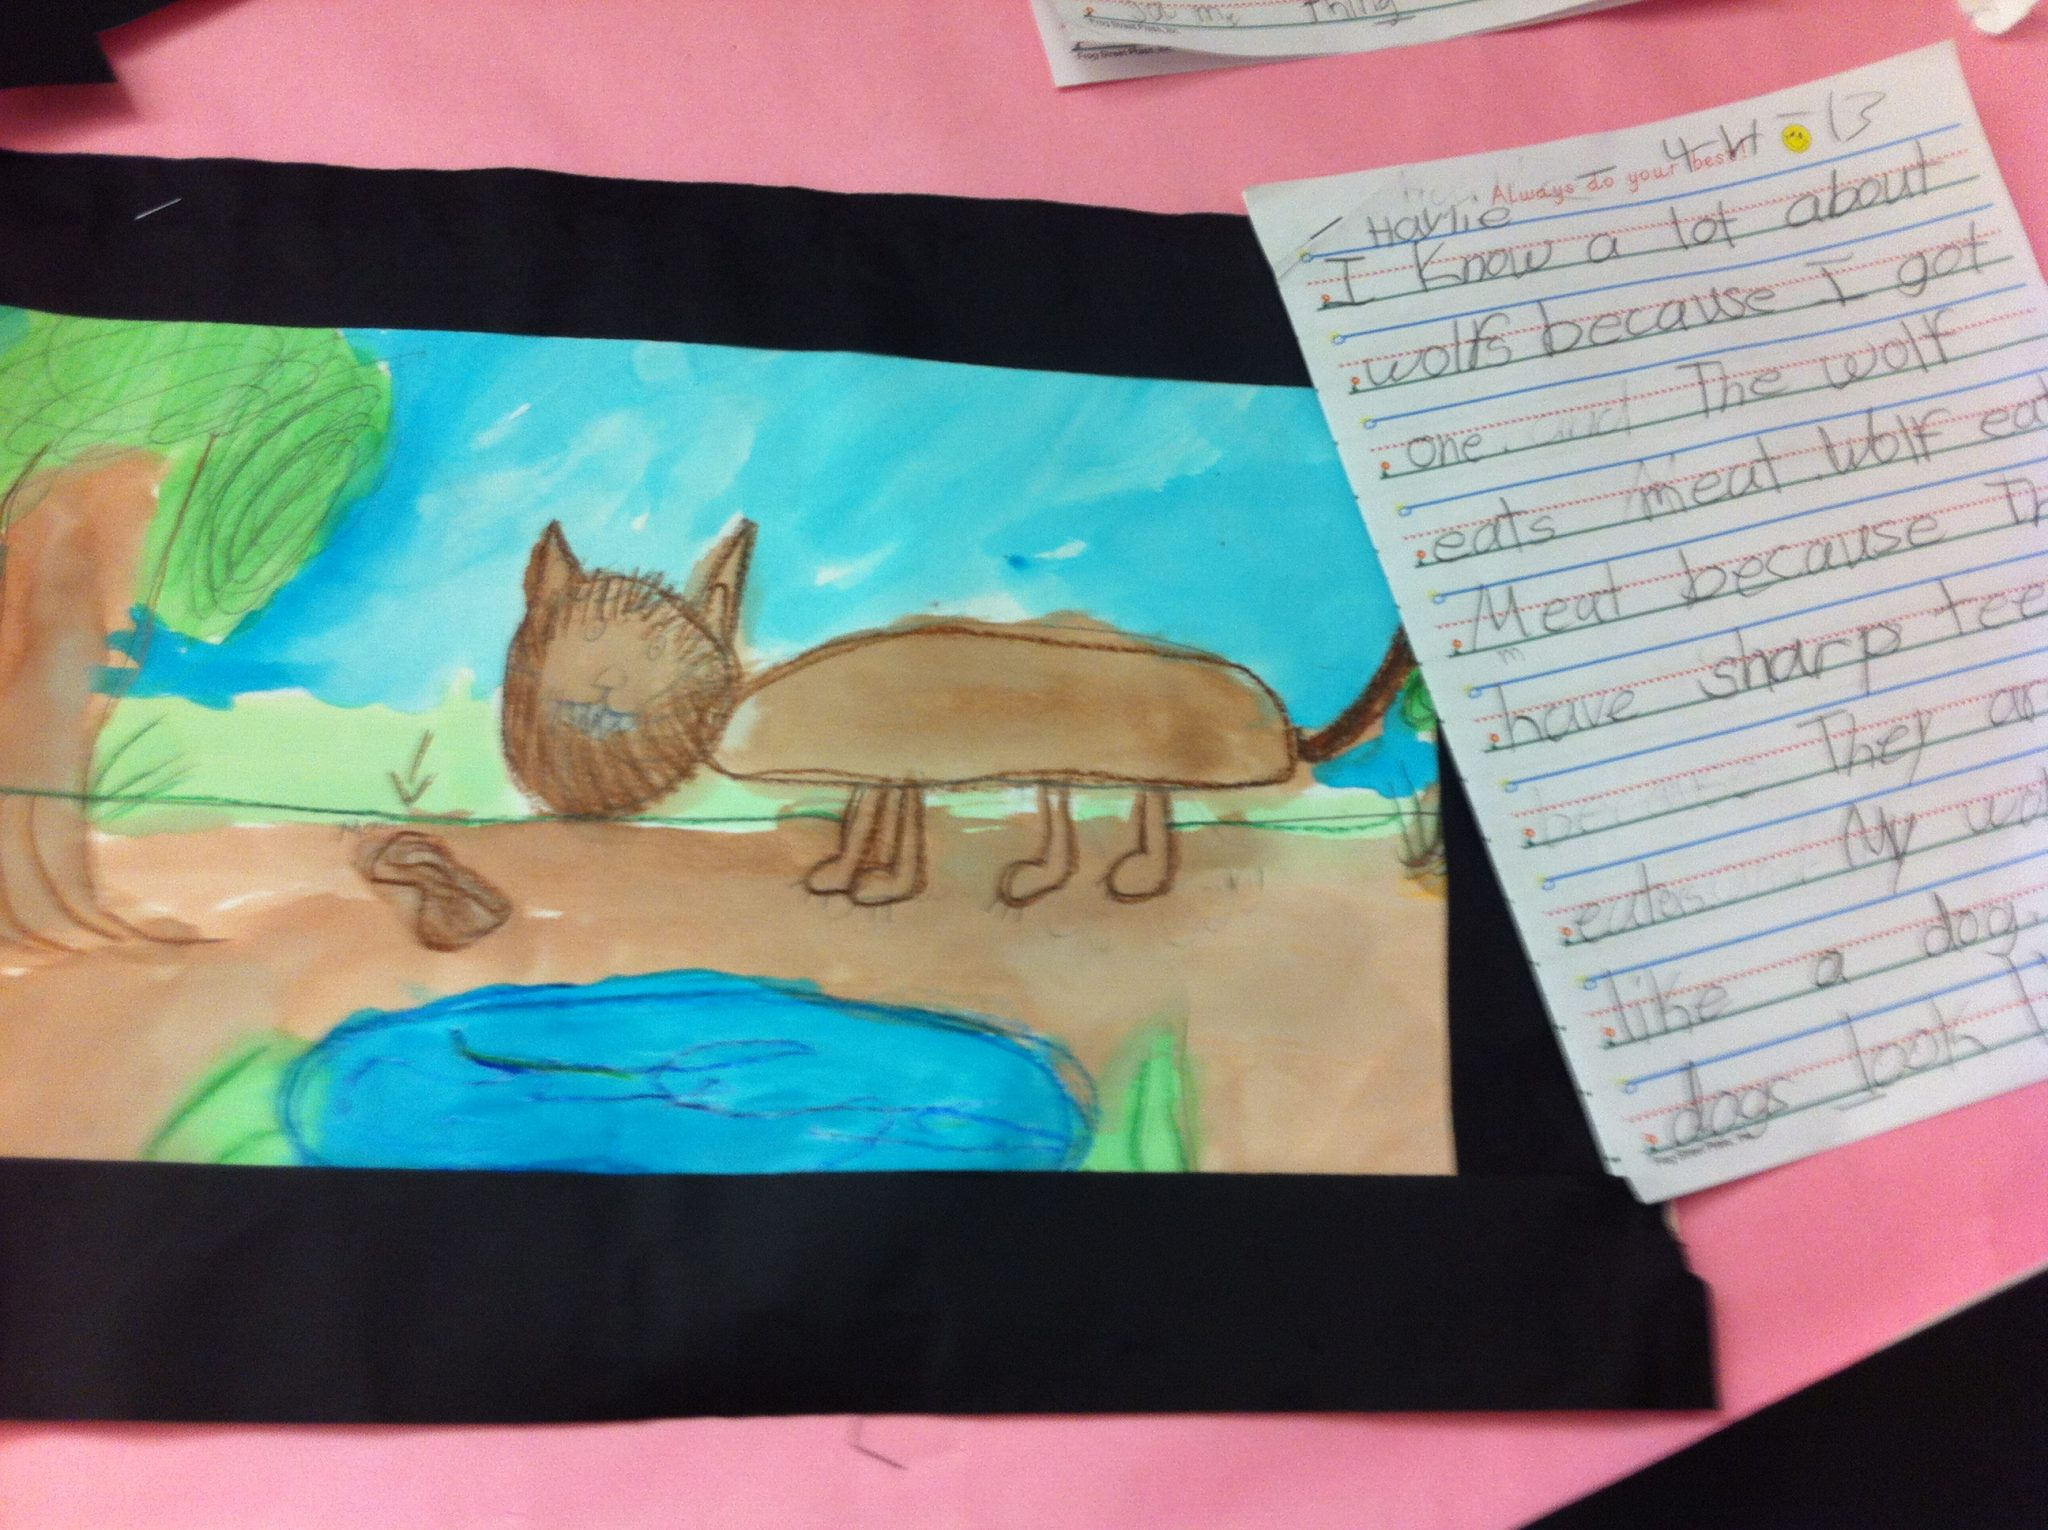 After our animal reports, we painted!